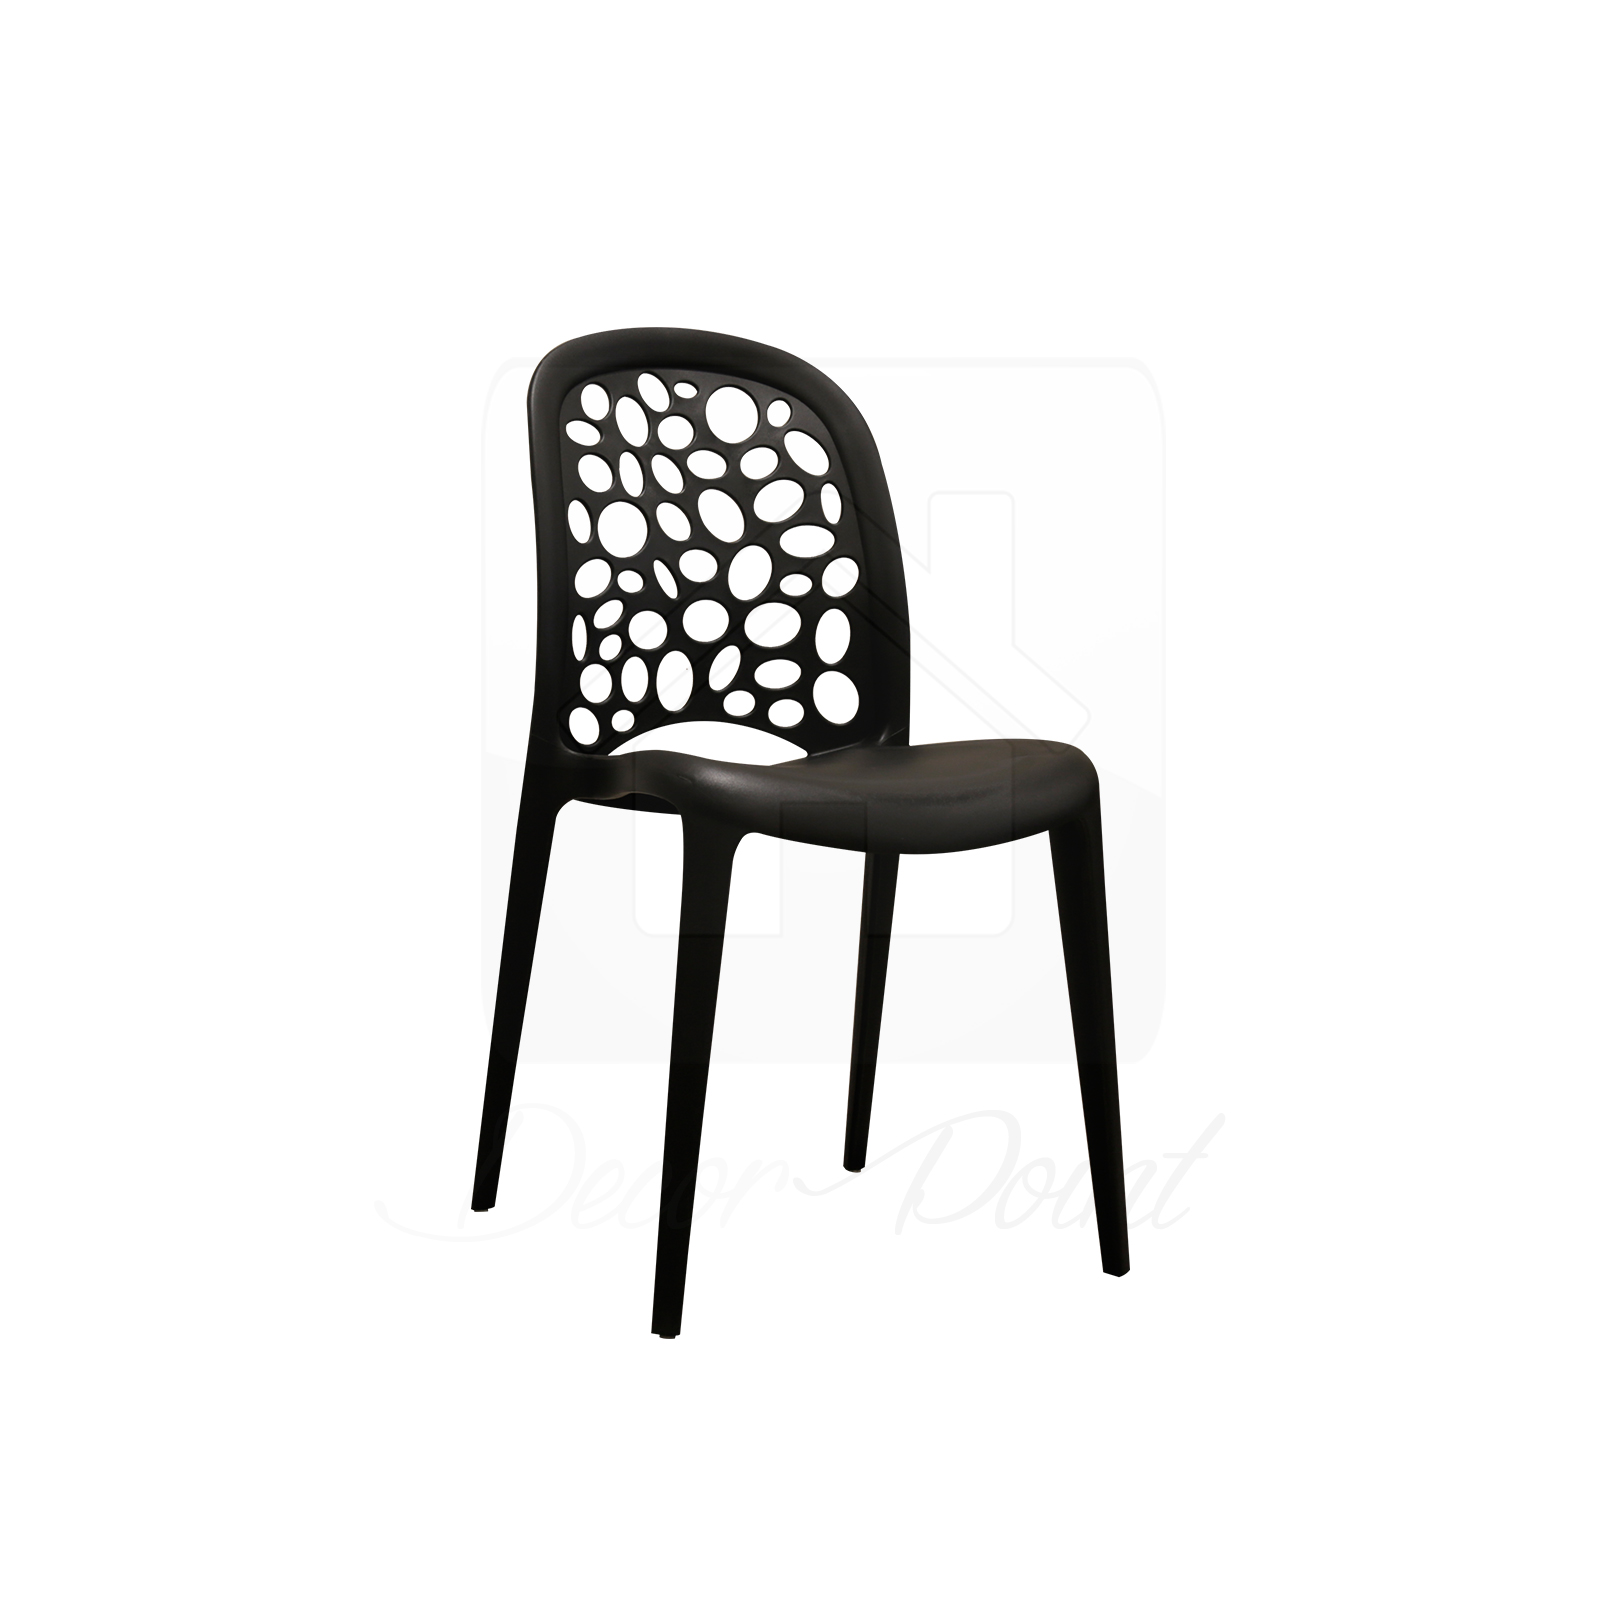 8 x new best quality black midas plastic dining chairs for for Black plastic dining chairs